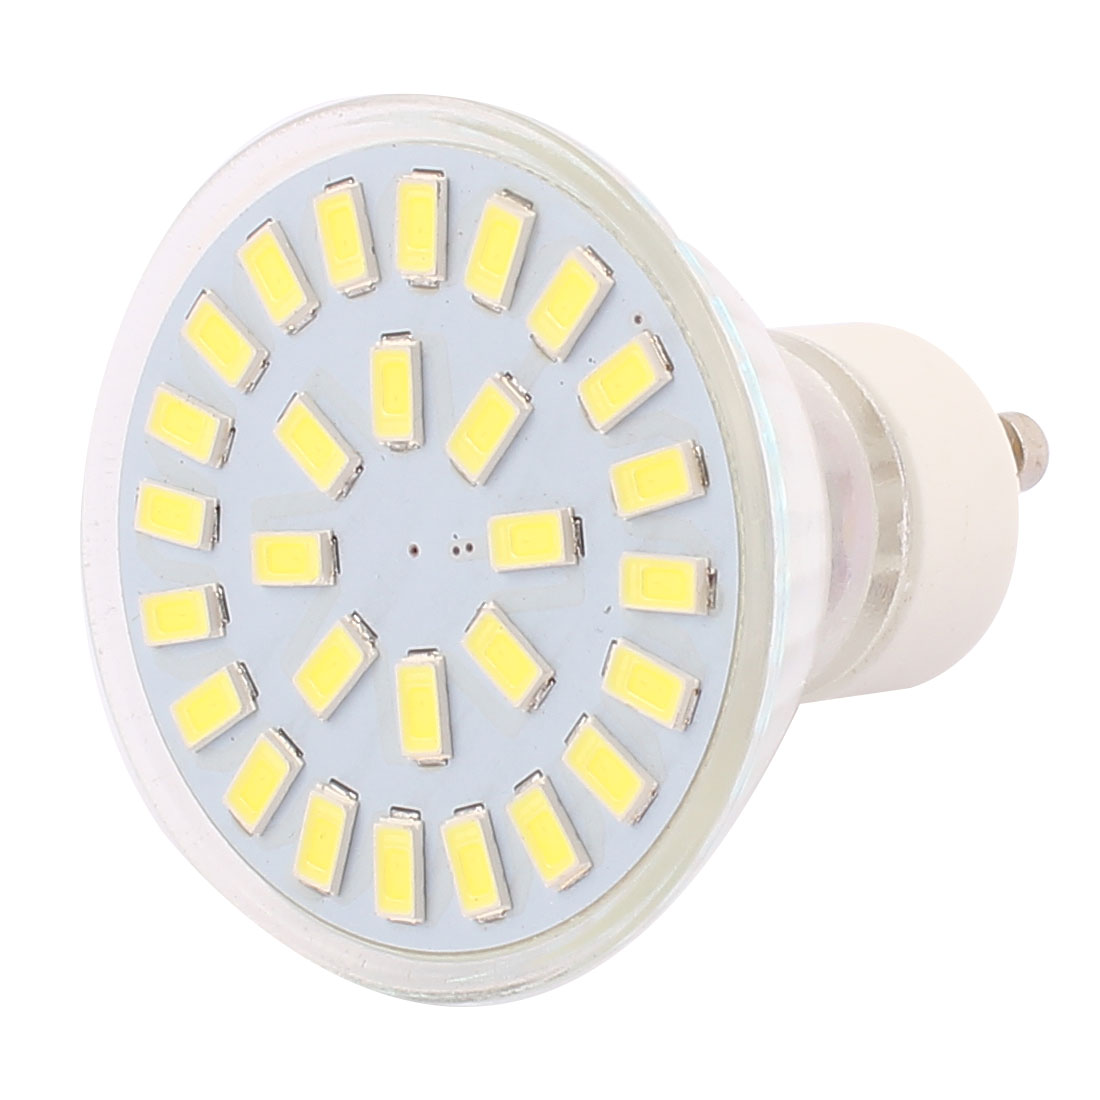 220V-240V GU10 LED Light 4W 5730 SMD 28 LEDs Spotlight Down Lamp Bulb Lighting Pure White